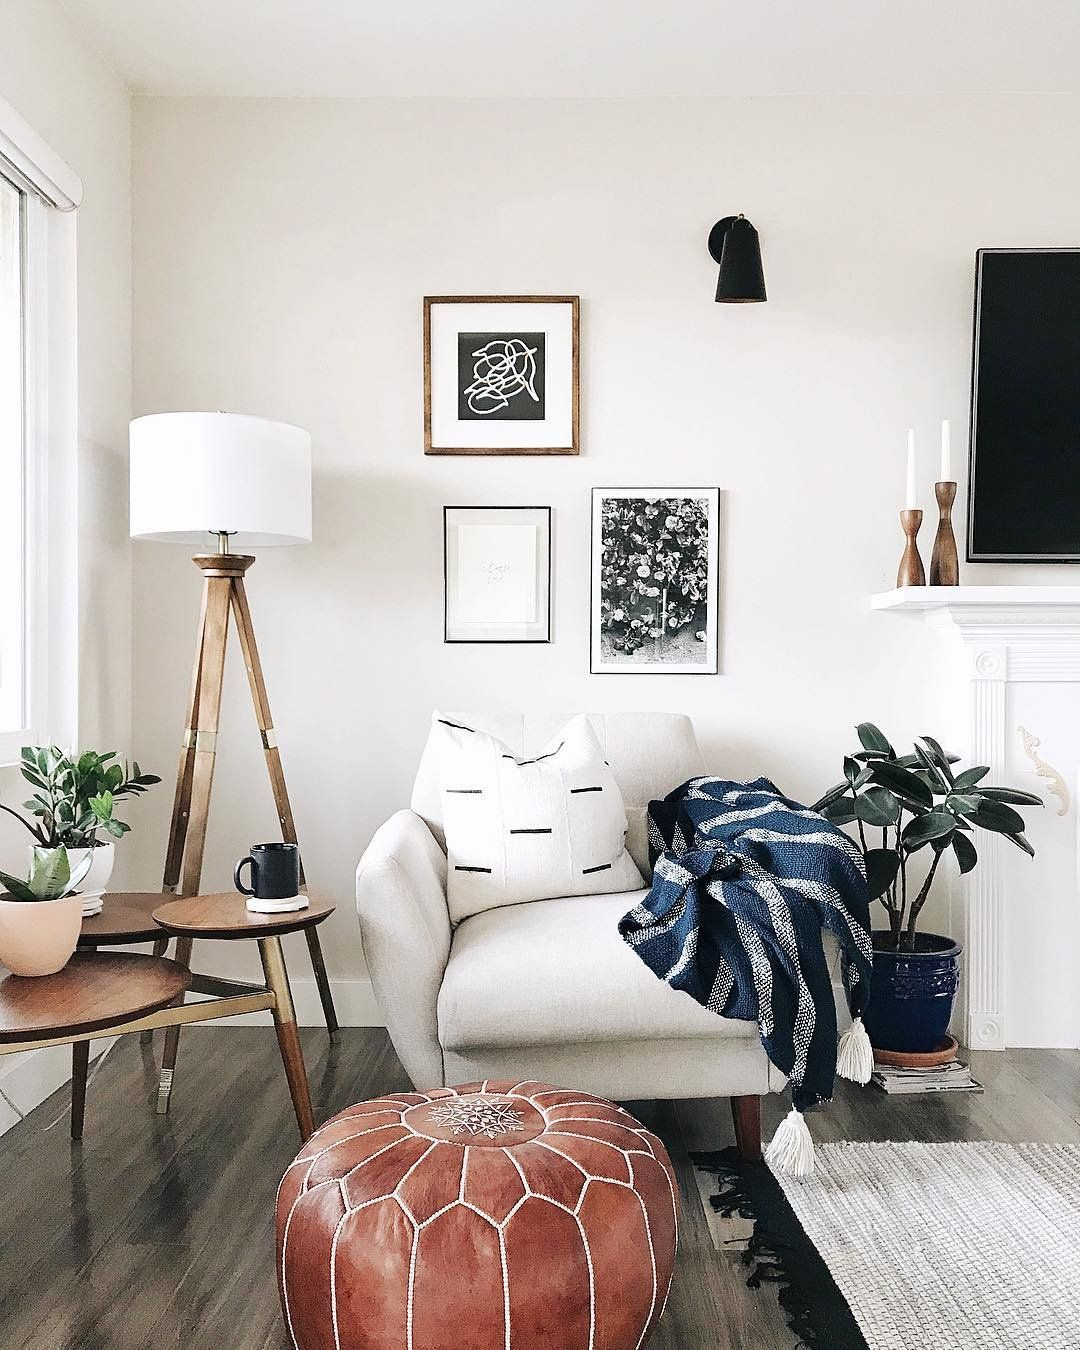 I Kinda Don T Want To Make Plans For The Rest Of The Year Friday Mood Instagram Jensane Home Living Room Minimalist Home Home Decor